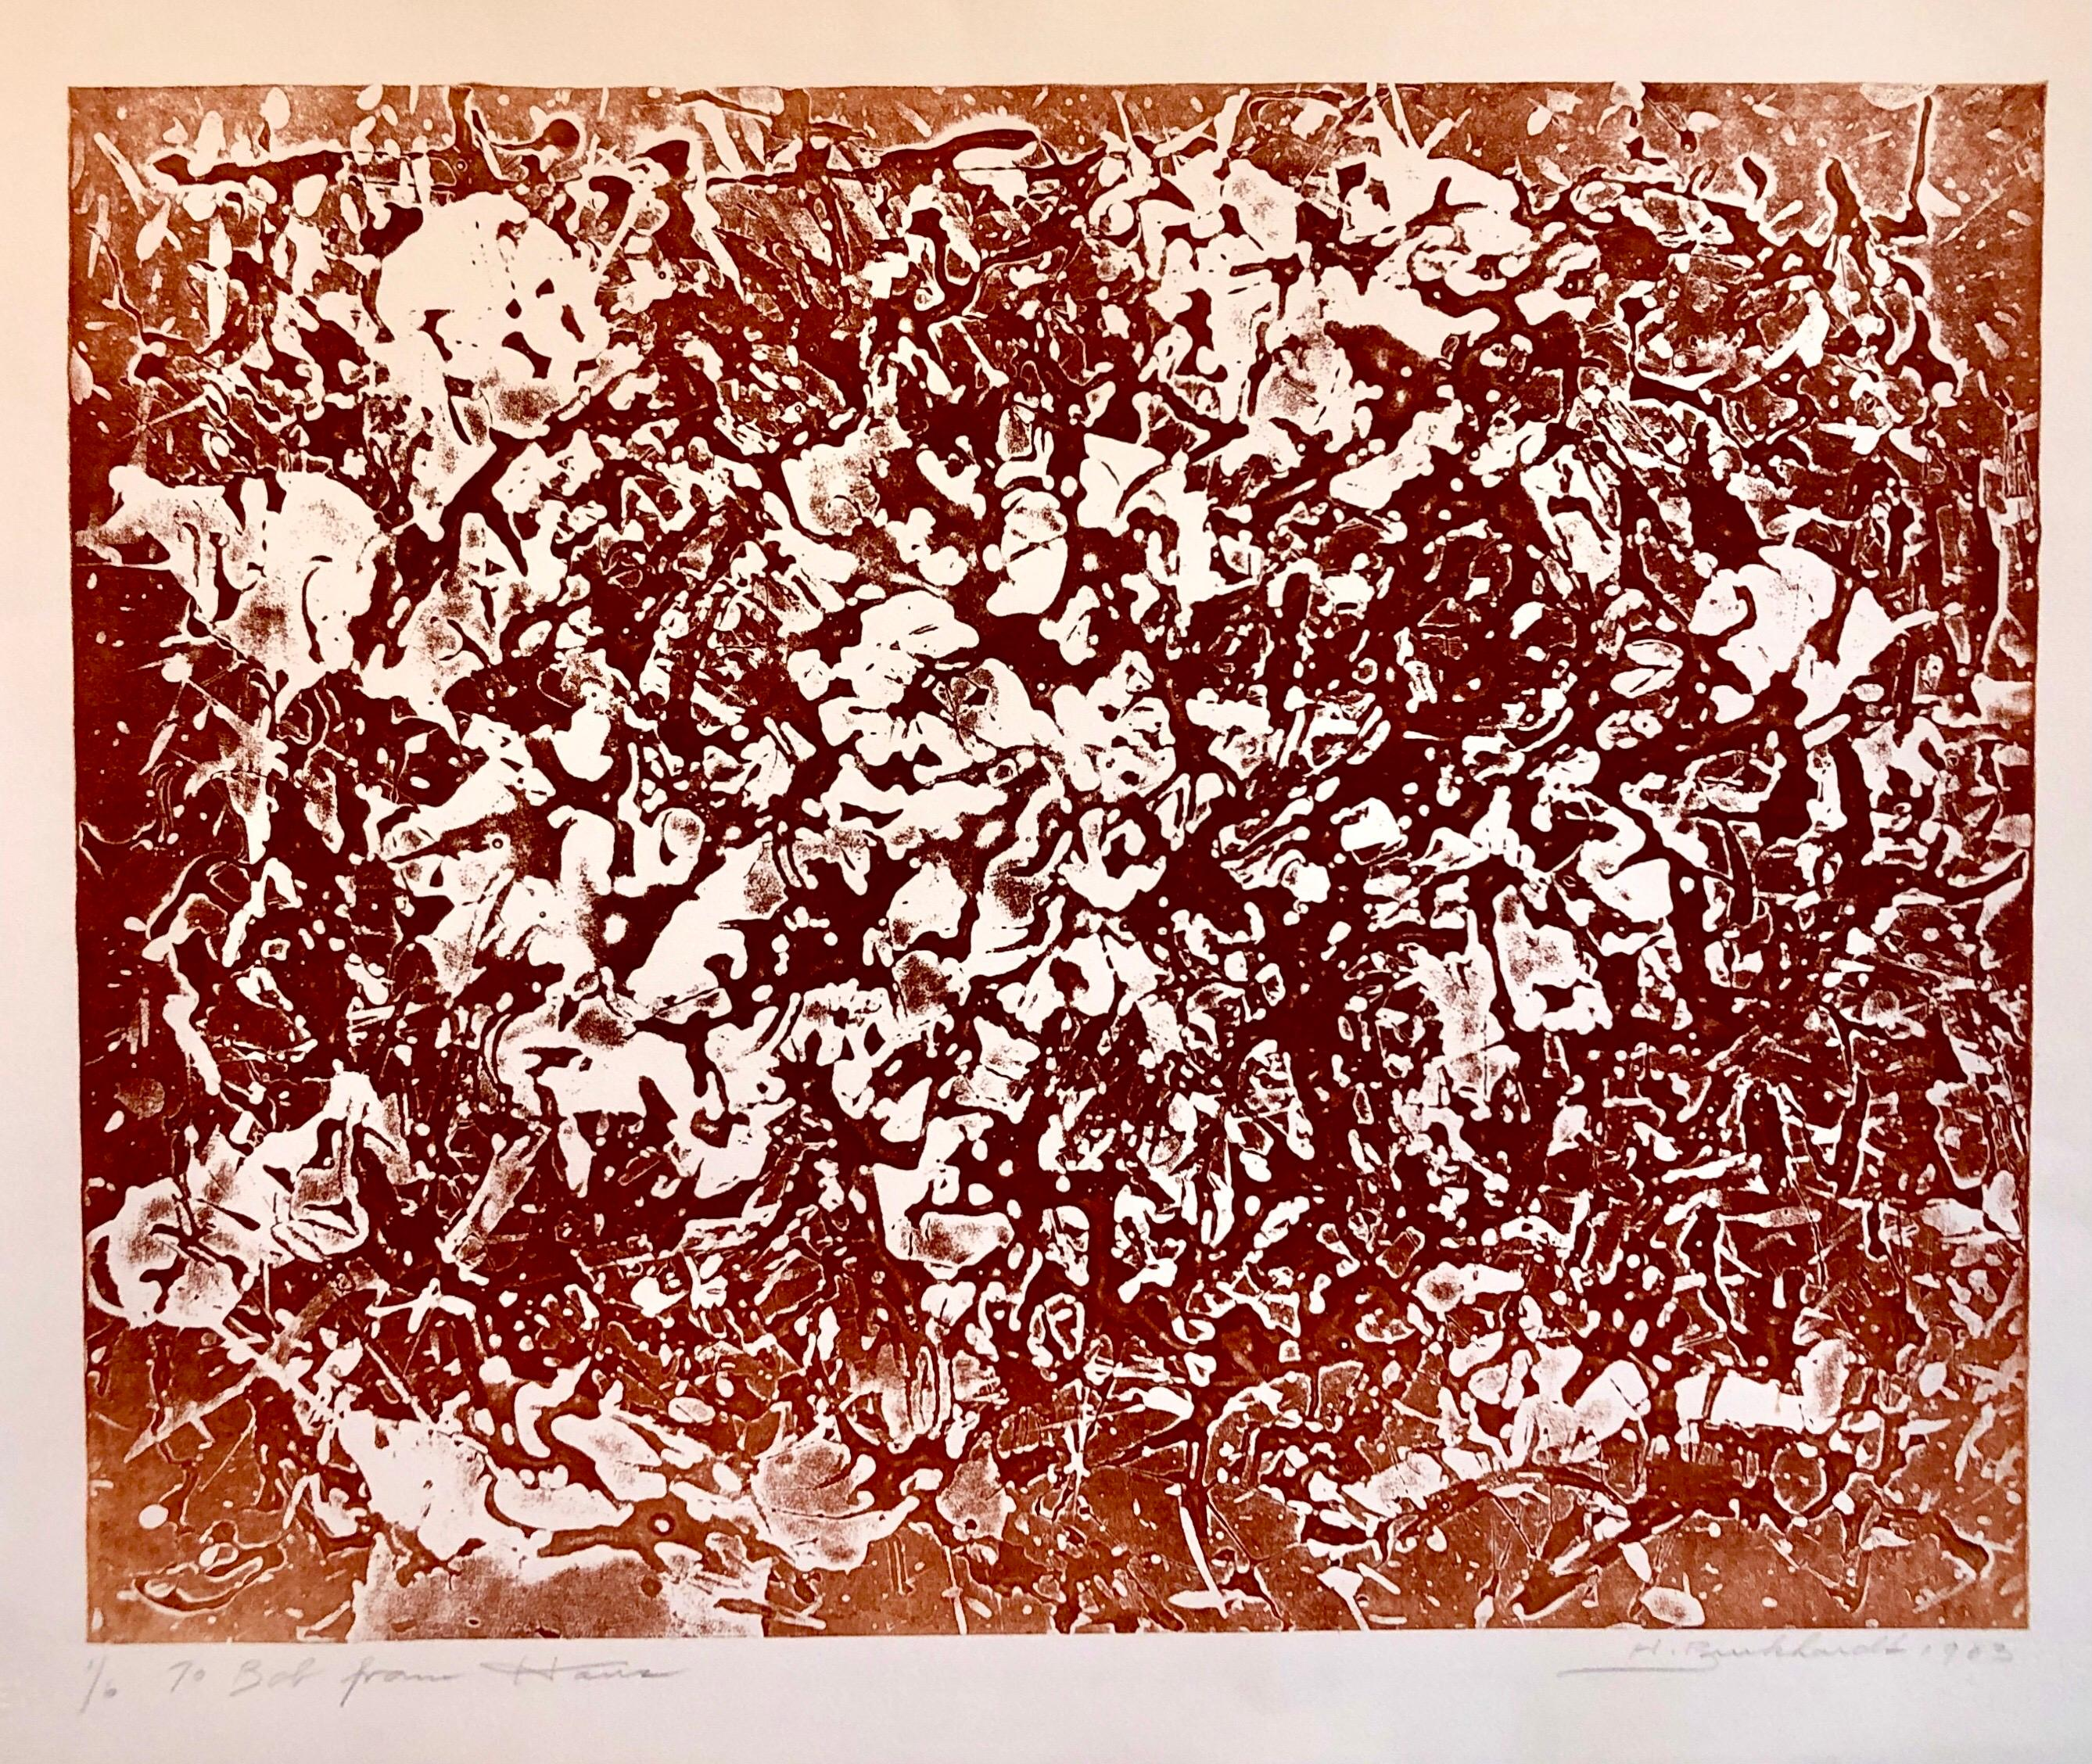 California Abstract Expressionist Linocut Lithograph Sepia Print Edition of 6